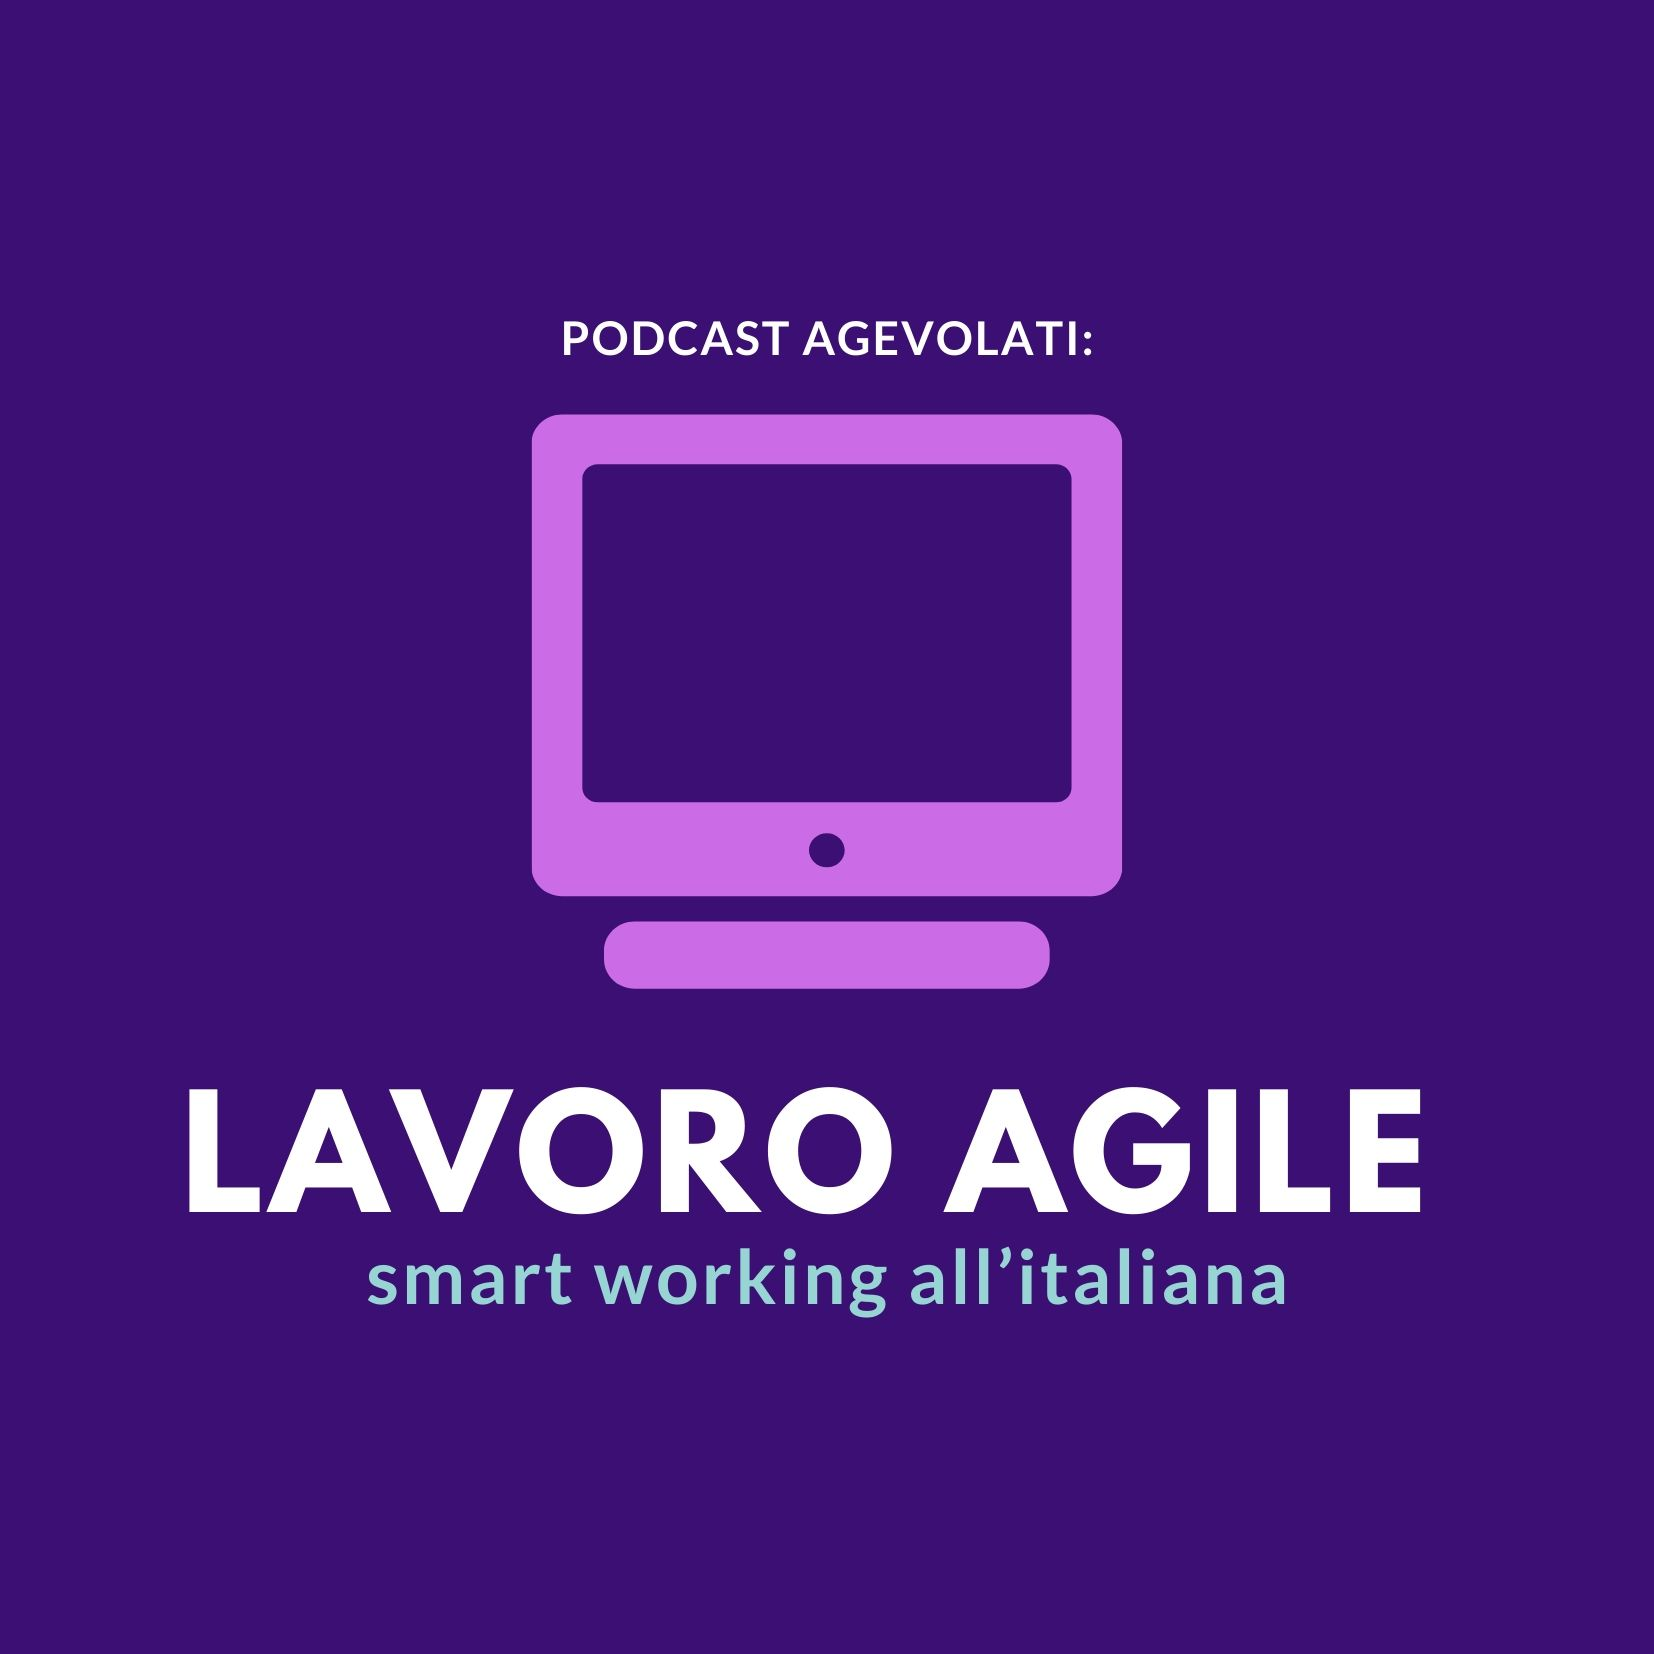 podcast agevolati smart working, immagina in evidenza